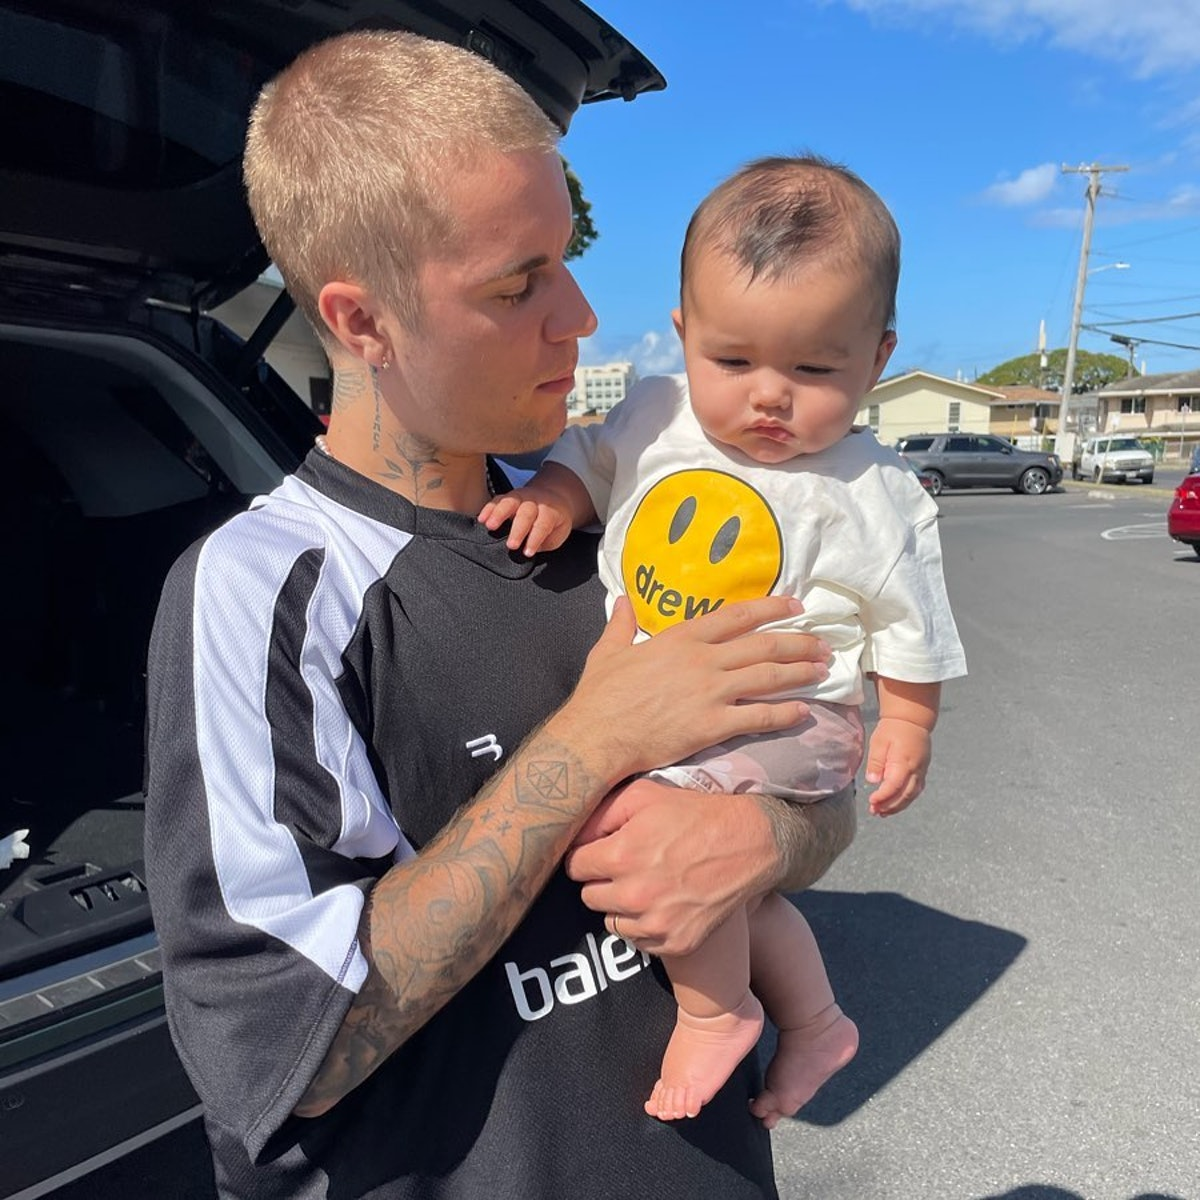 Justin Bieber sporting a buzzcut and holding a baby